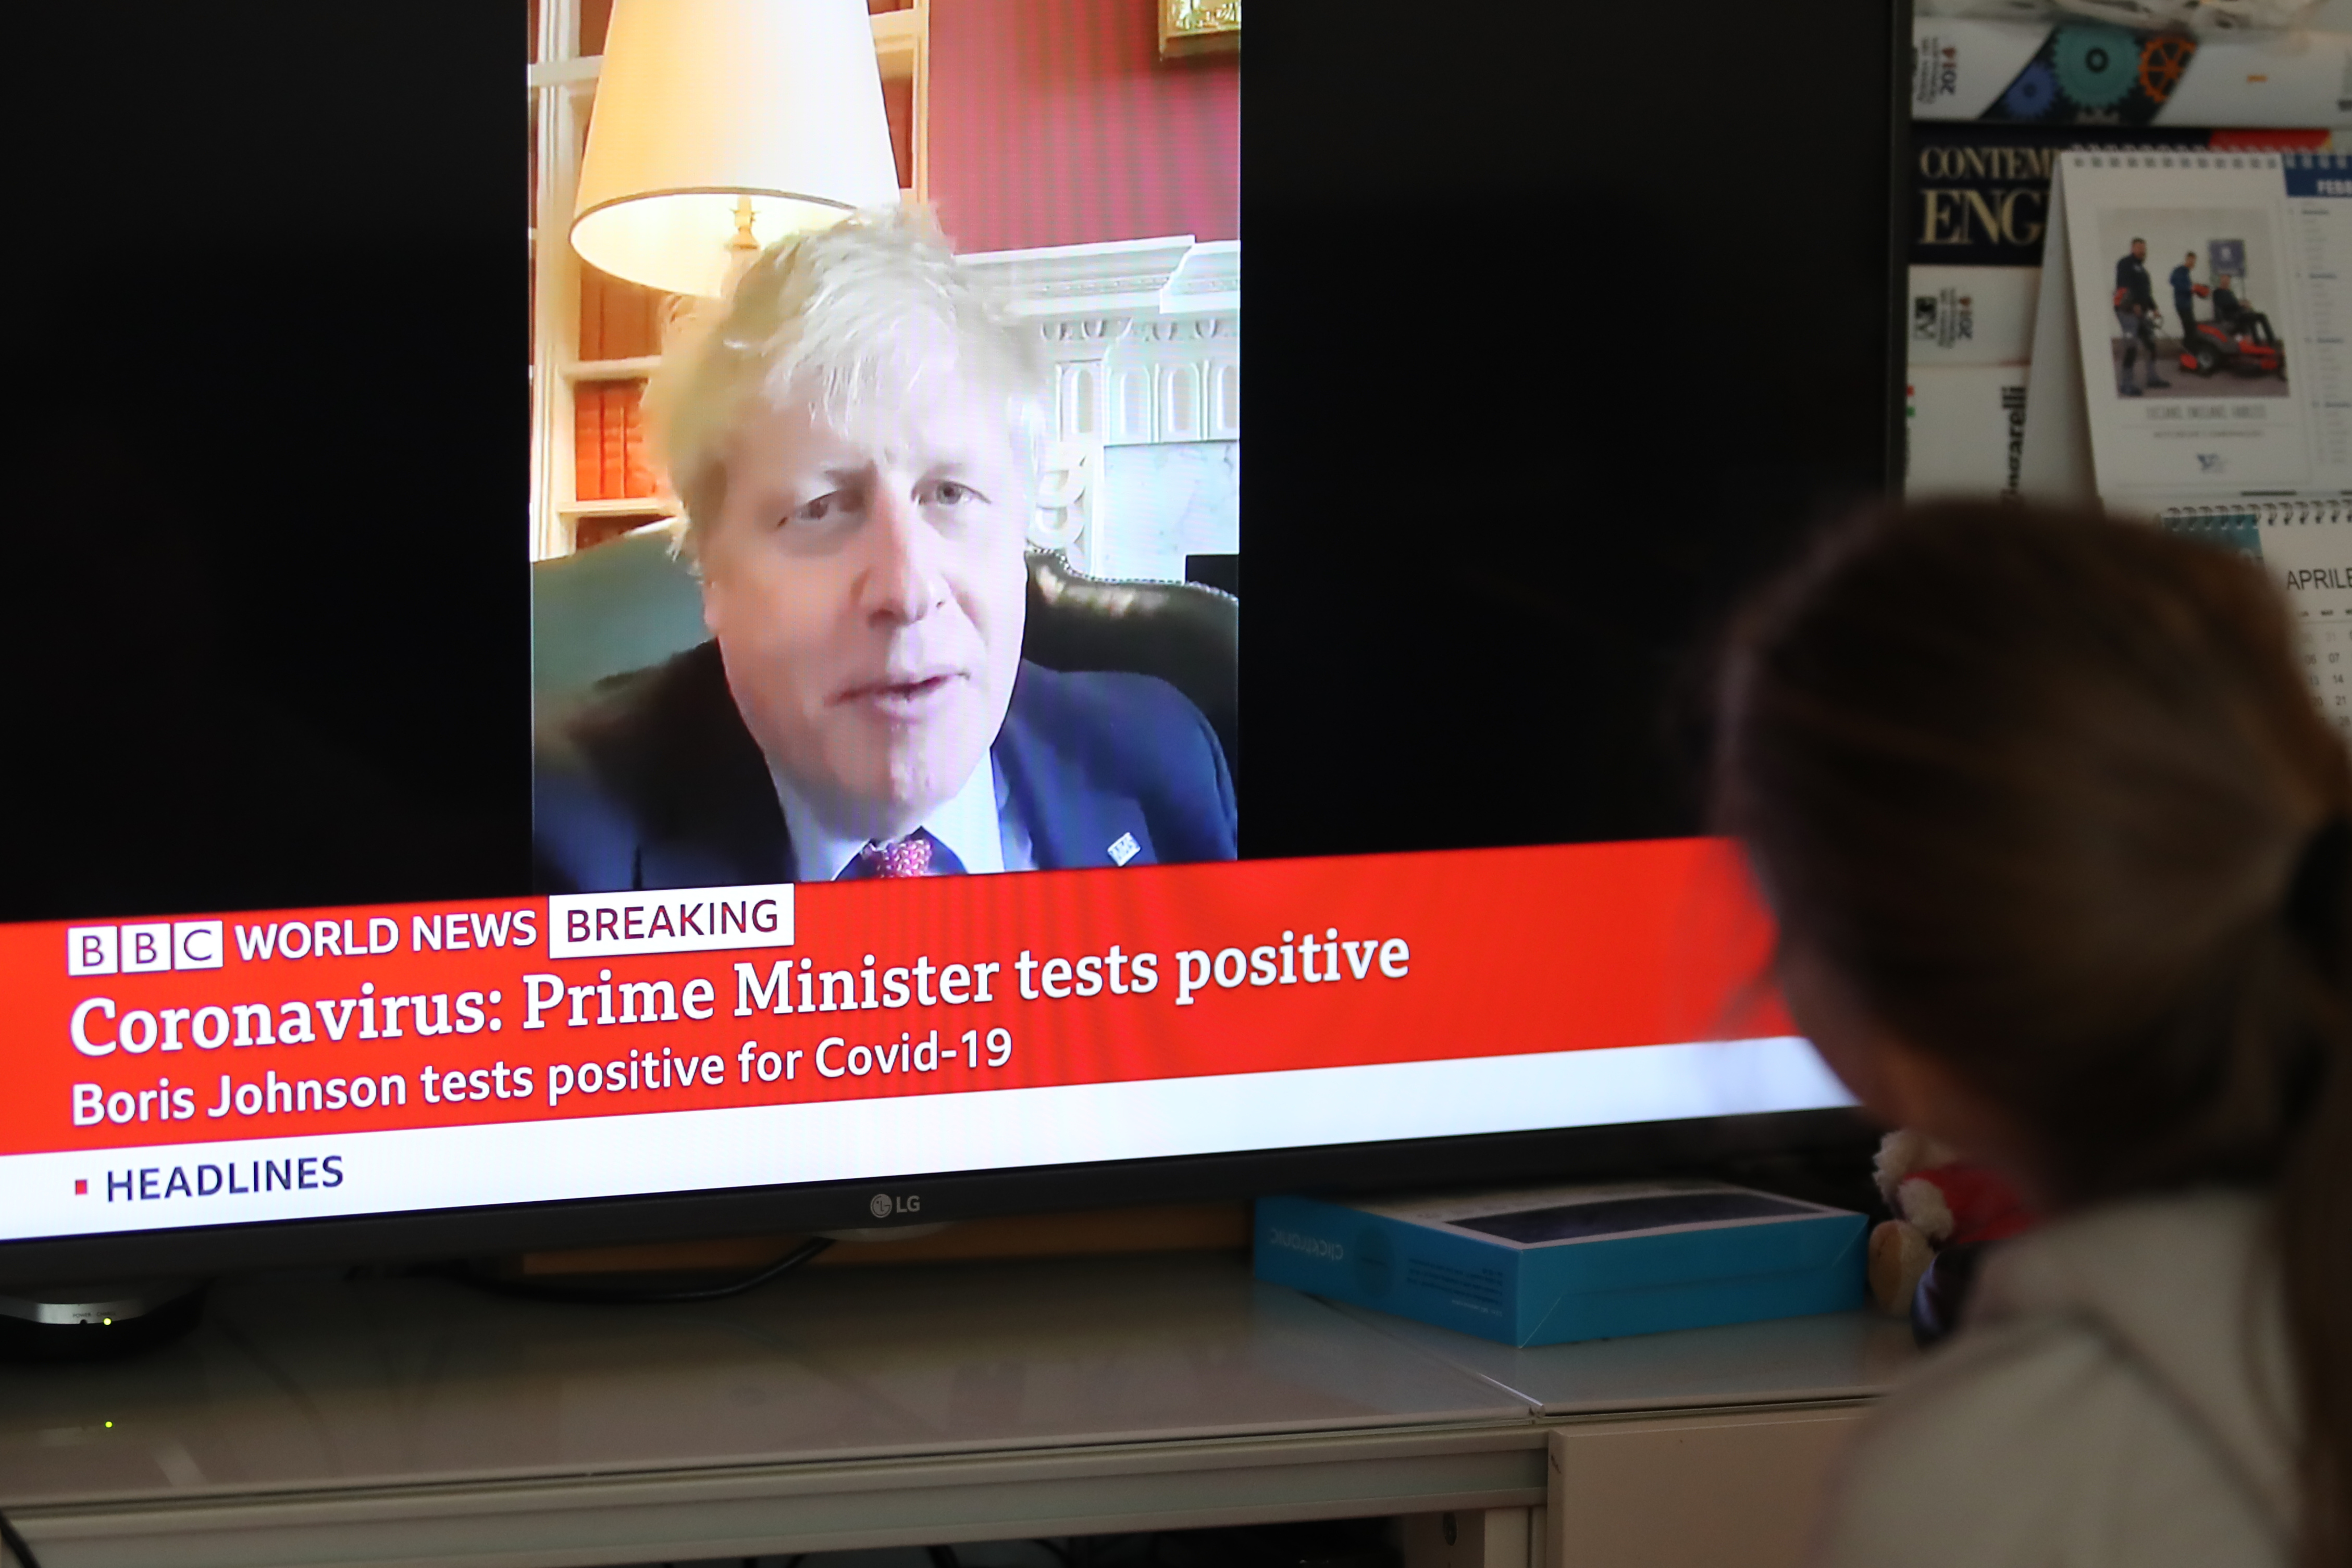 27/03/2020 in Pergine Valsugana, Italy. A girl looks at BBC World News giving the Breaking News of UK Prime Minister Boris Johnson tested positive at the Coronavirus Most part of Europe is today on a sweeping confinement to try to slow down the spread of the Covid-19 Pandemic. Boris Johnson, UK Prime Minister. (Photo by ESPA/Cal Sport Media/Sipa USA)